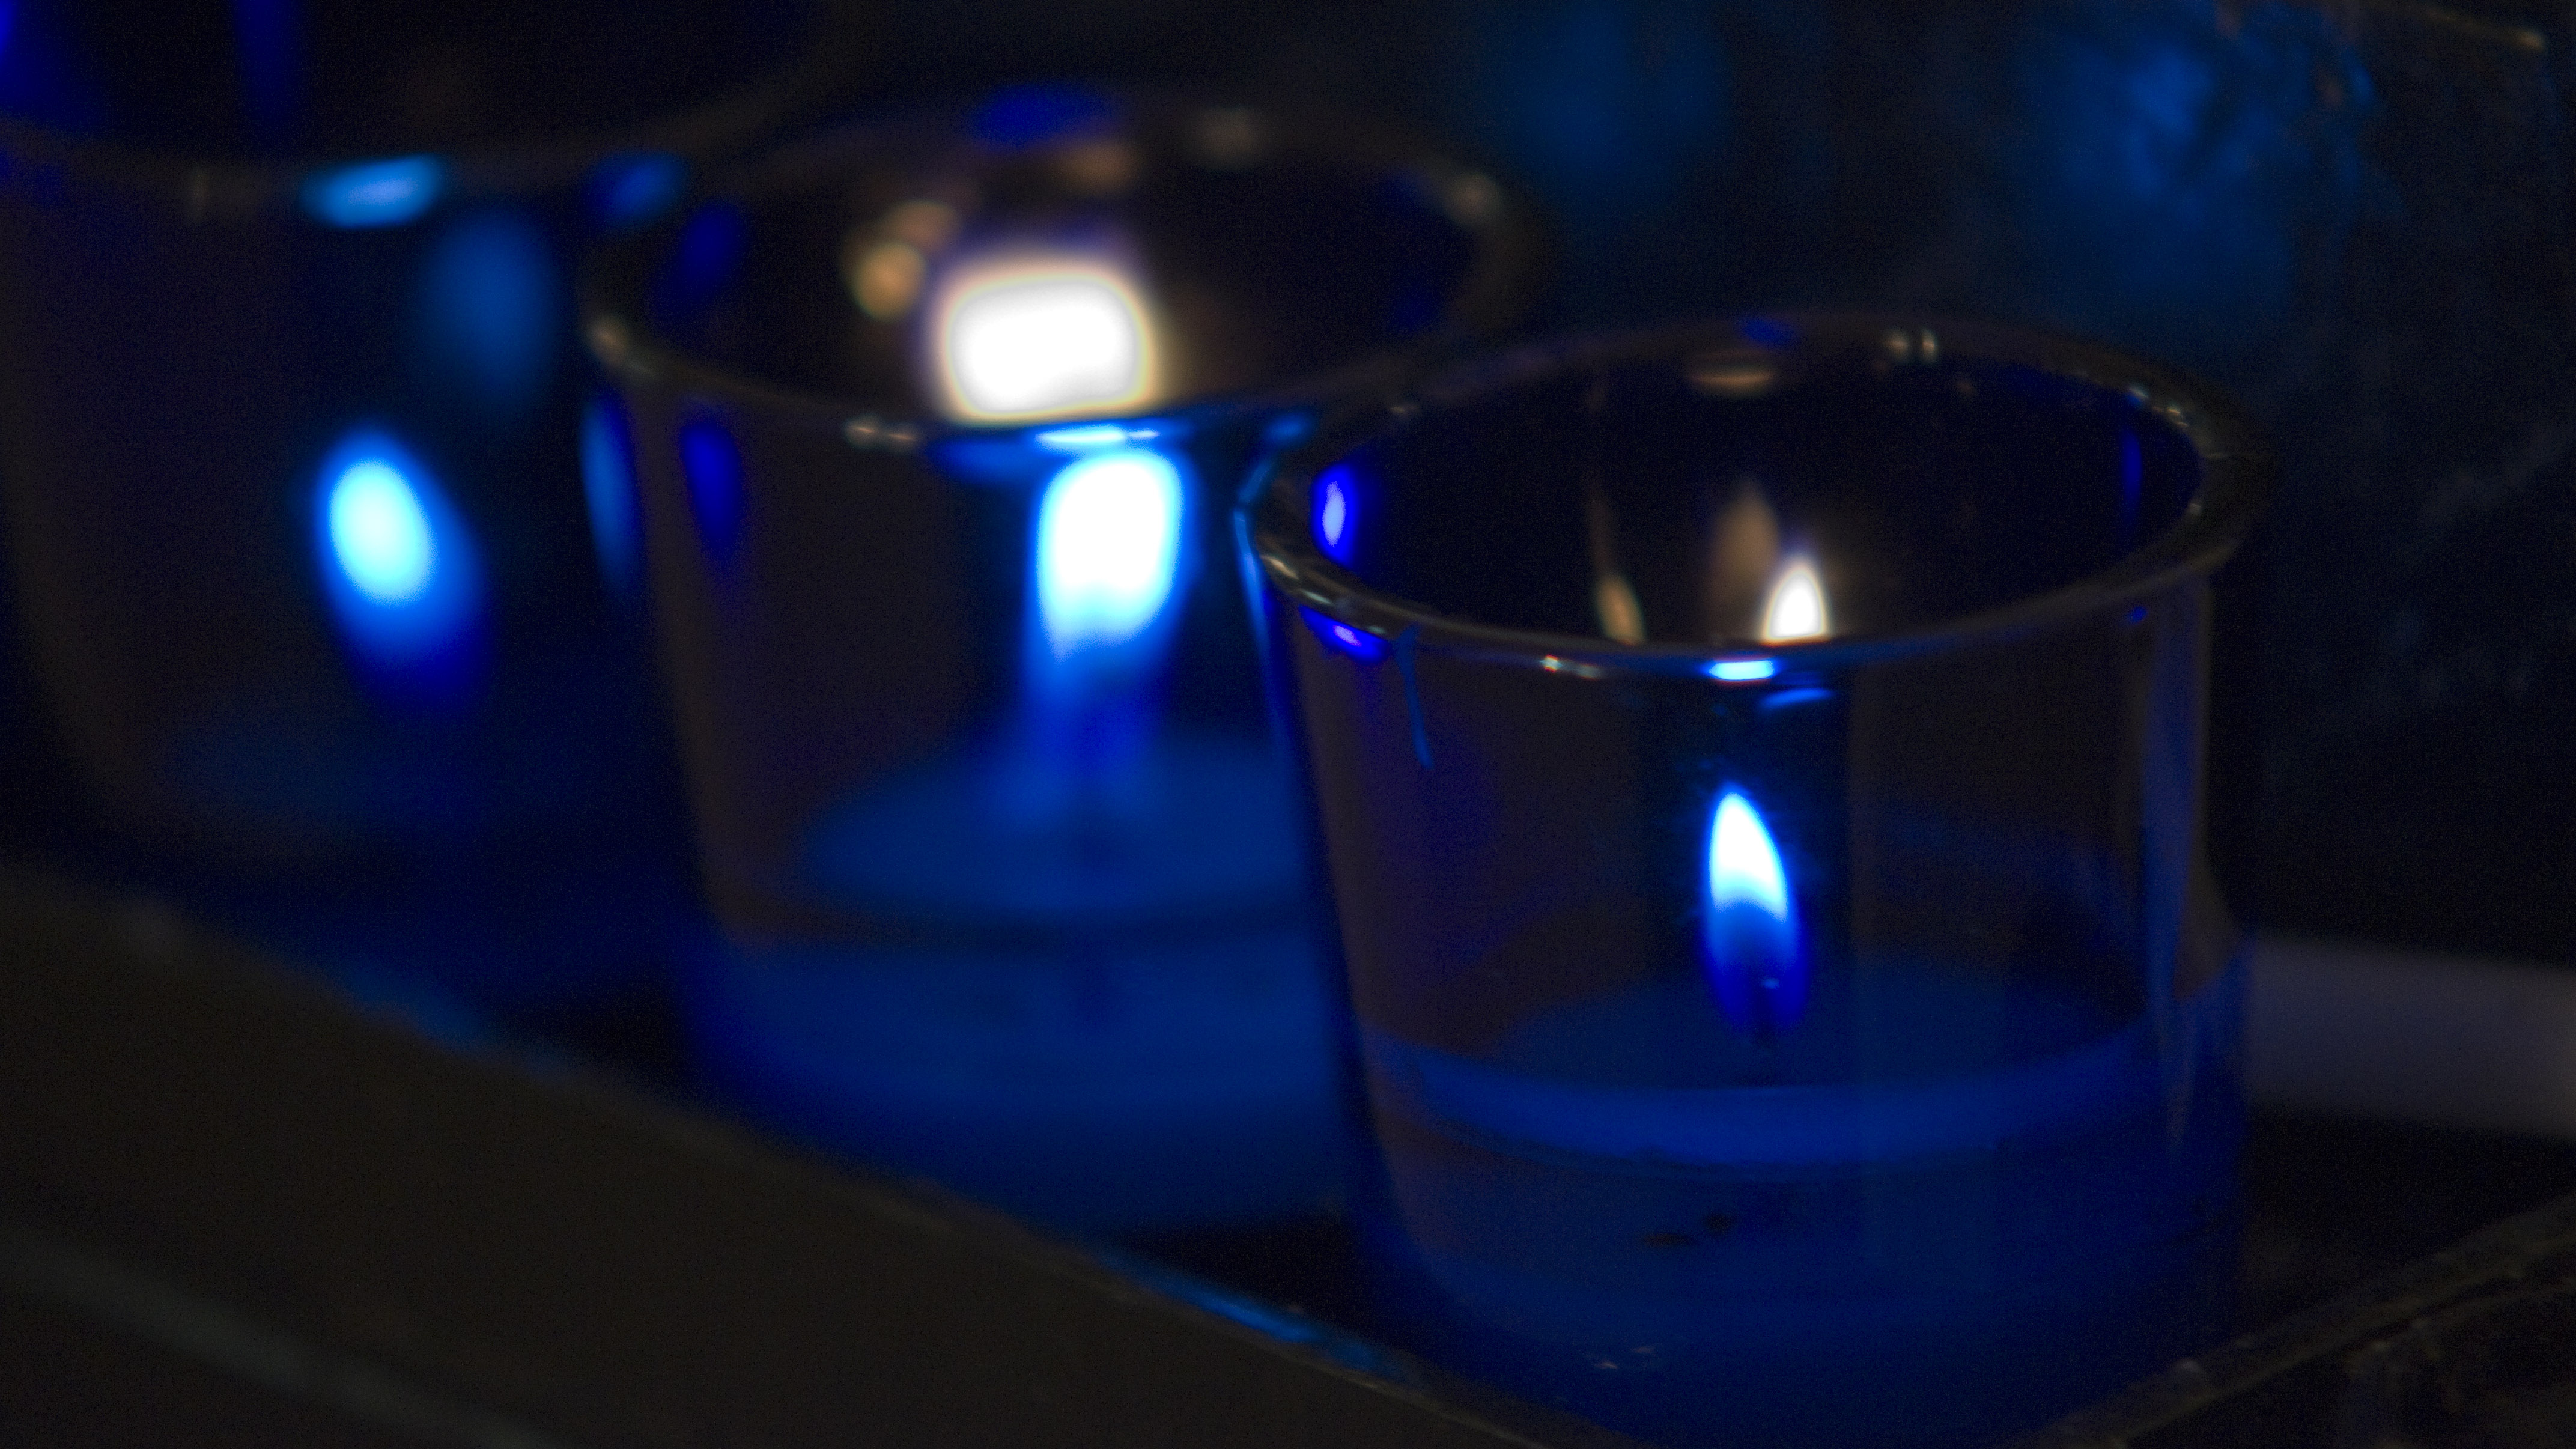 Photo of blue votive candles